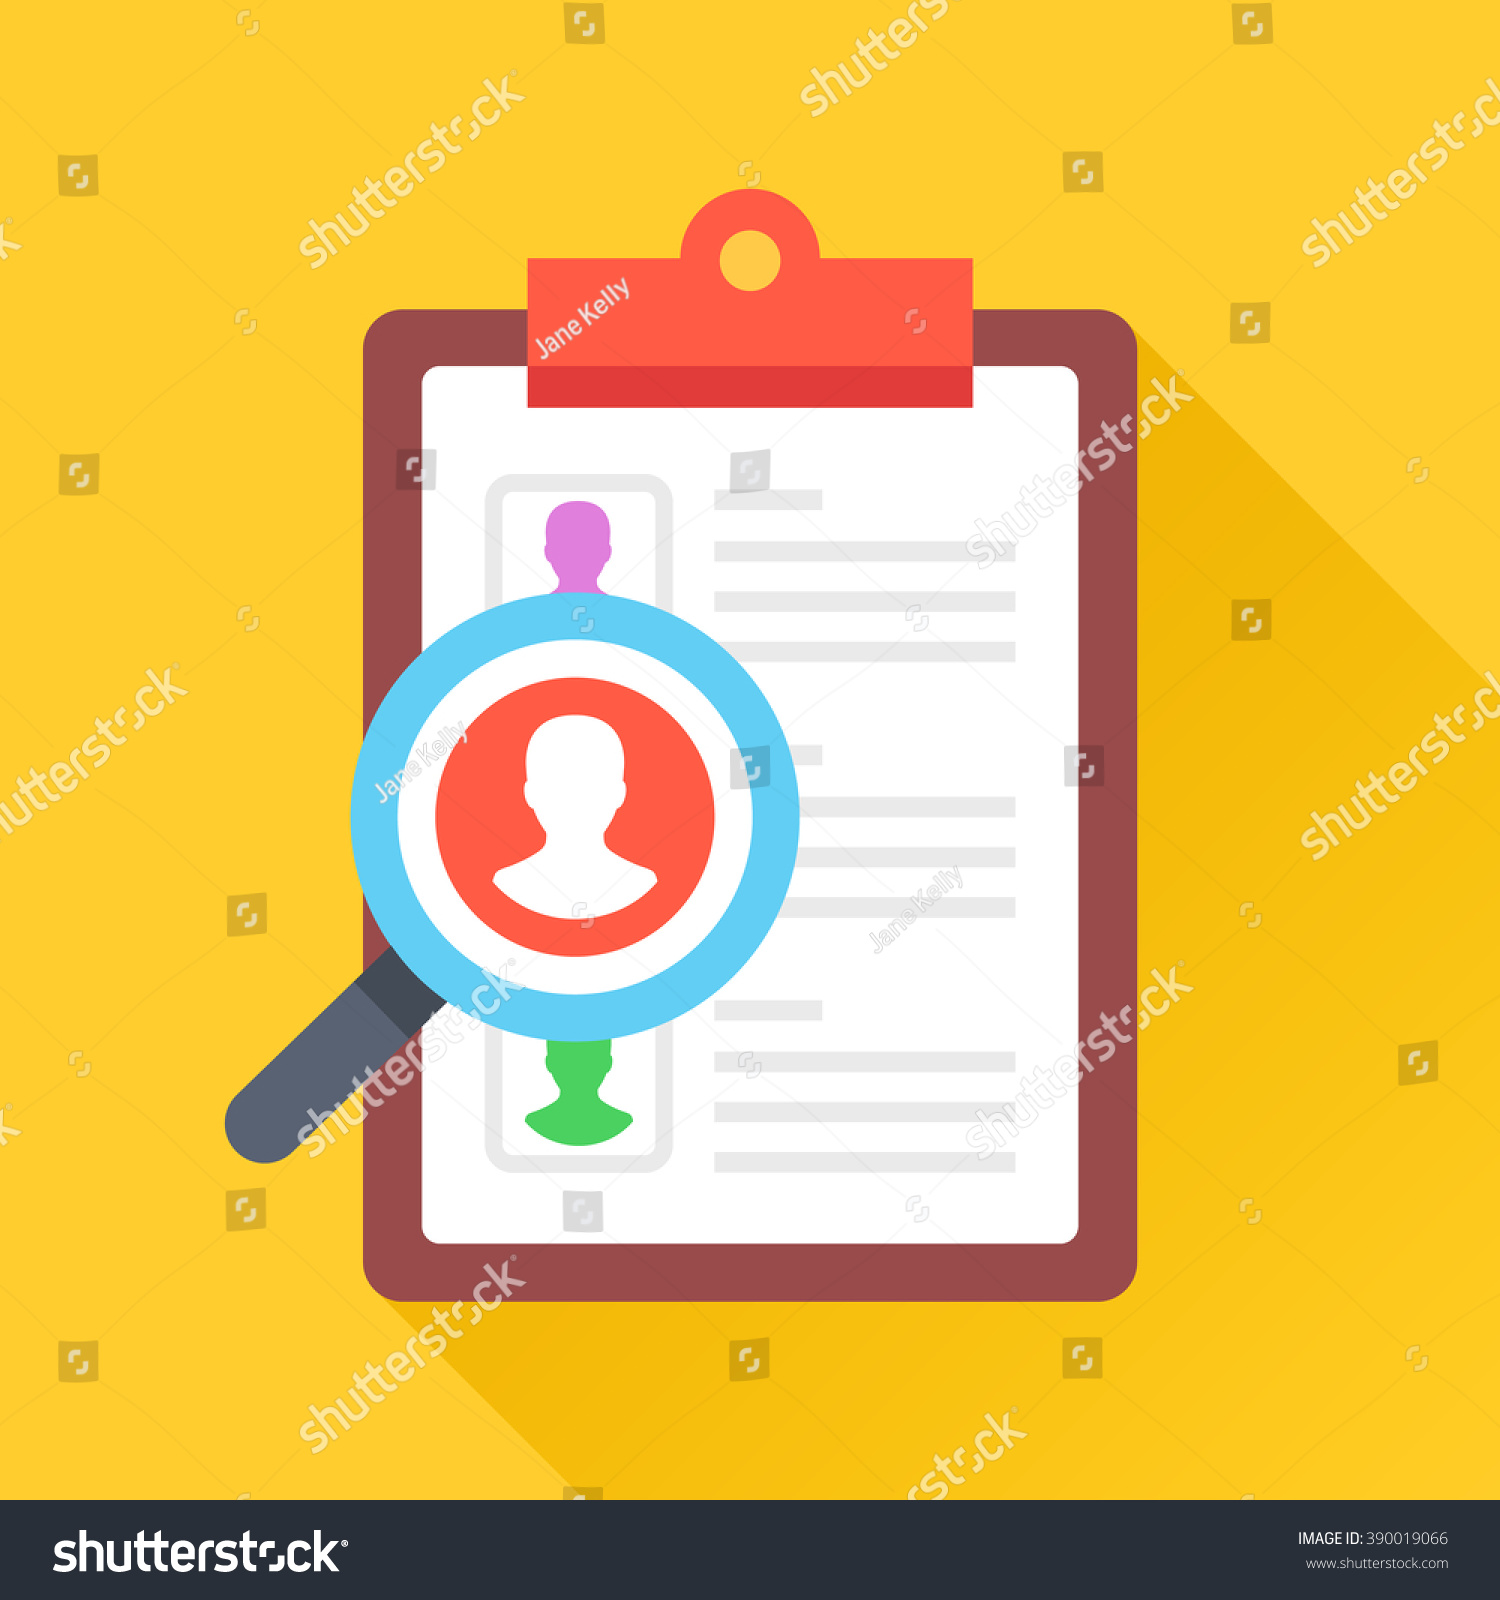 Clipboard and magnifying glass with man silhouette Human resources employee seeking employment recruiting concepts Flat design vector icon with long shadow isolated on yellow background